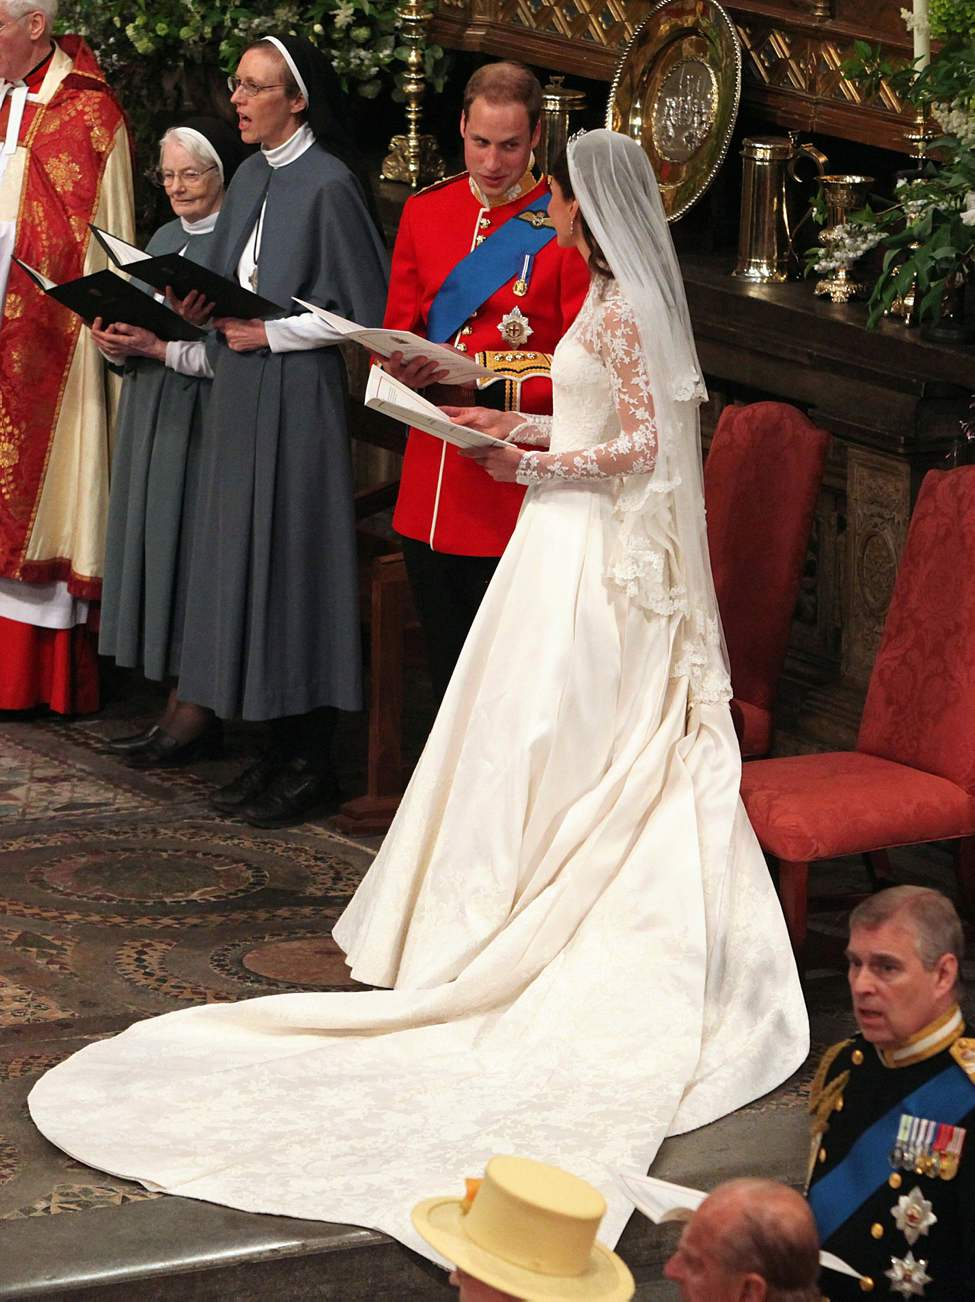 Prince William and Kate Middleton join in singing during their wedding at Westminster Abbey in London, England, on Friday, April 29, 2011. (Abaca Press/MCT)